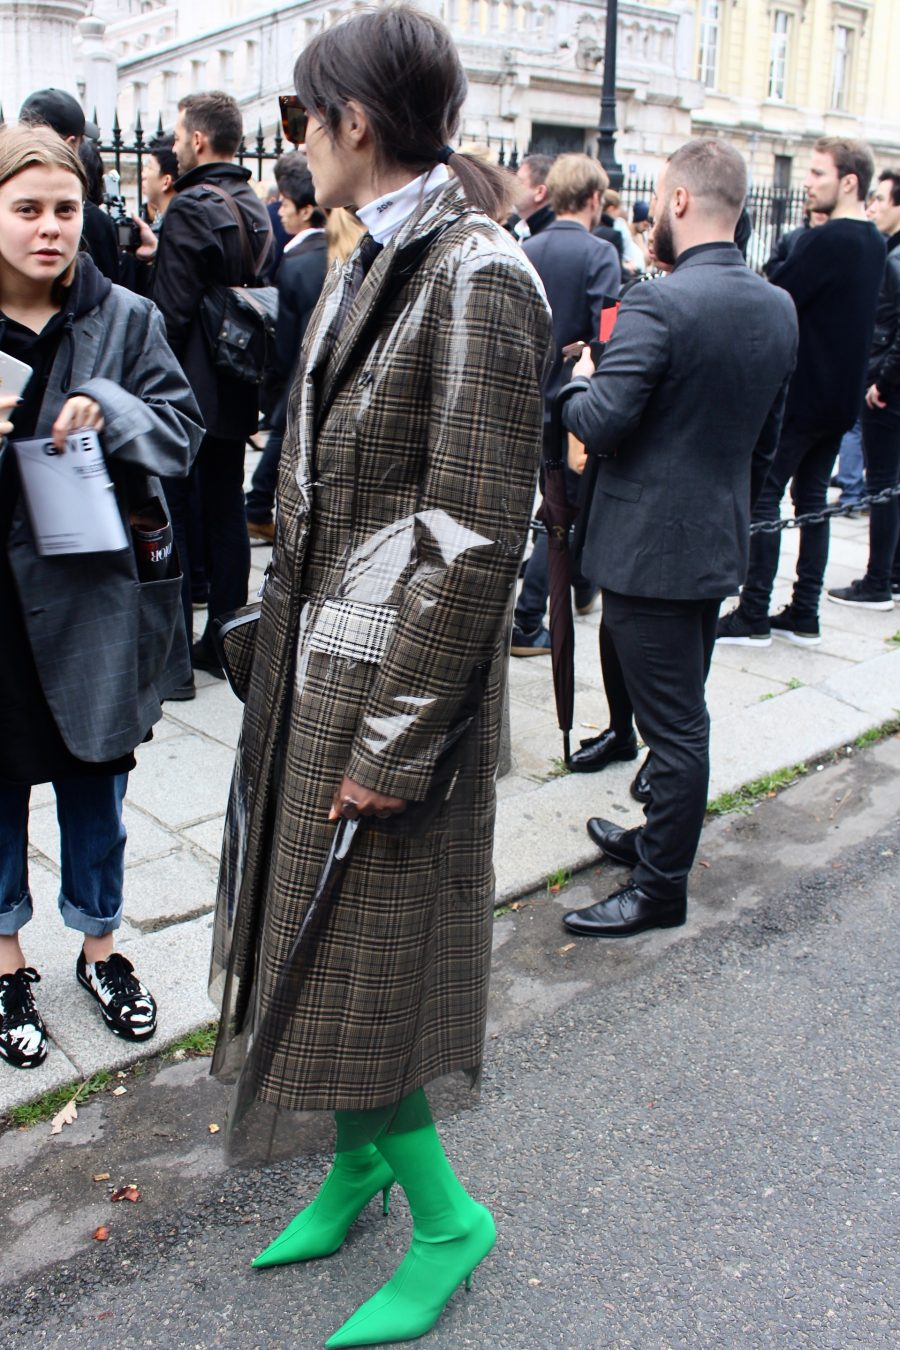 Street Style from Paris Fashion Week, Day 6